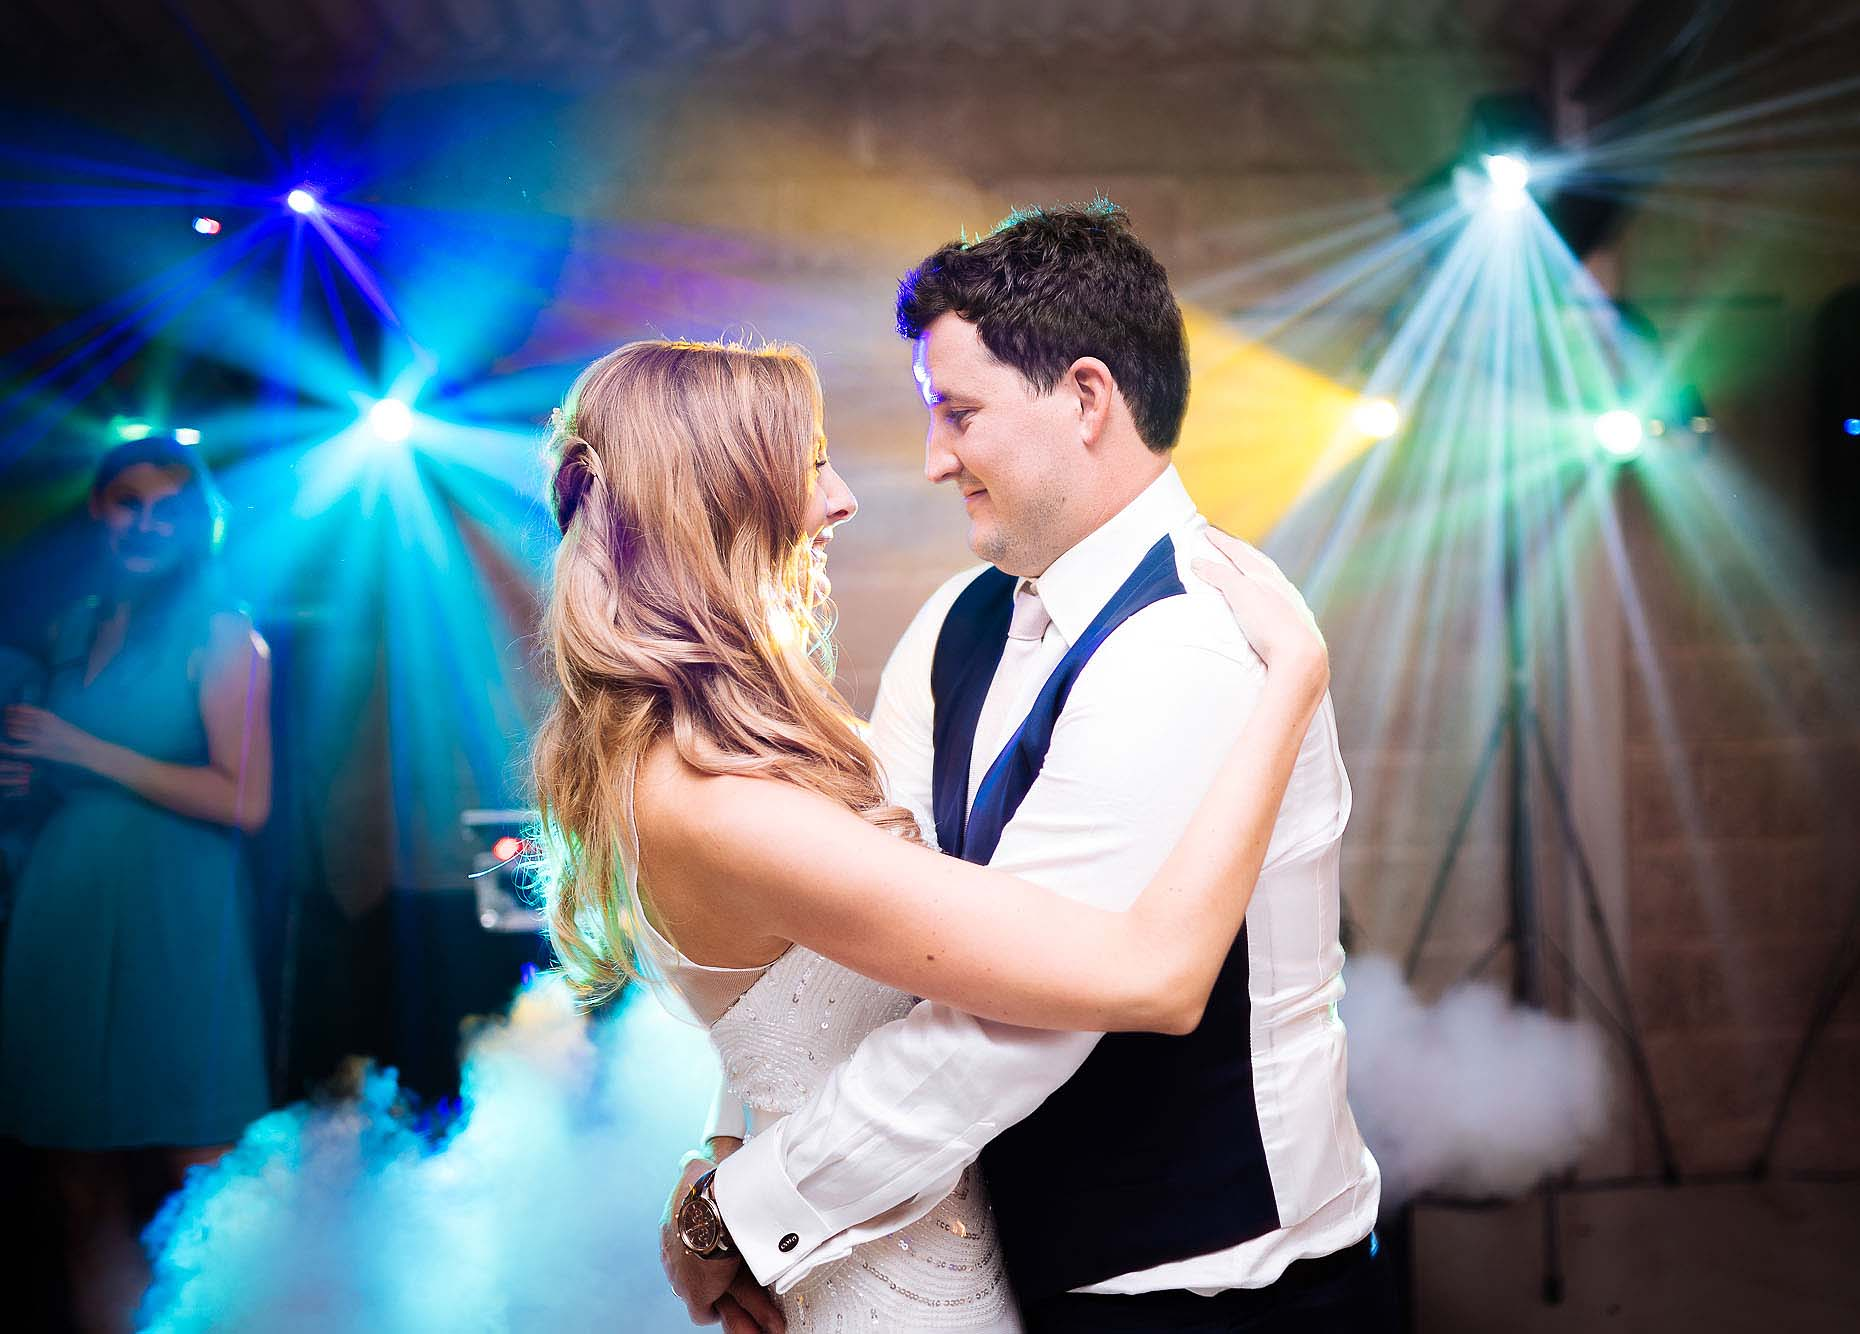 first-dance-vanessa-axnoller-house-colour-lights-25